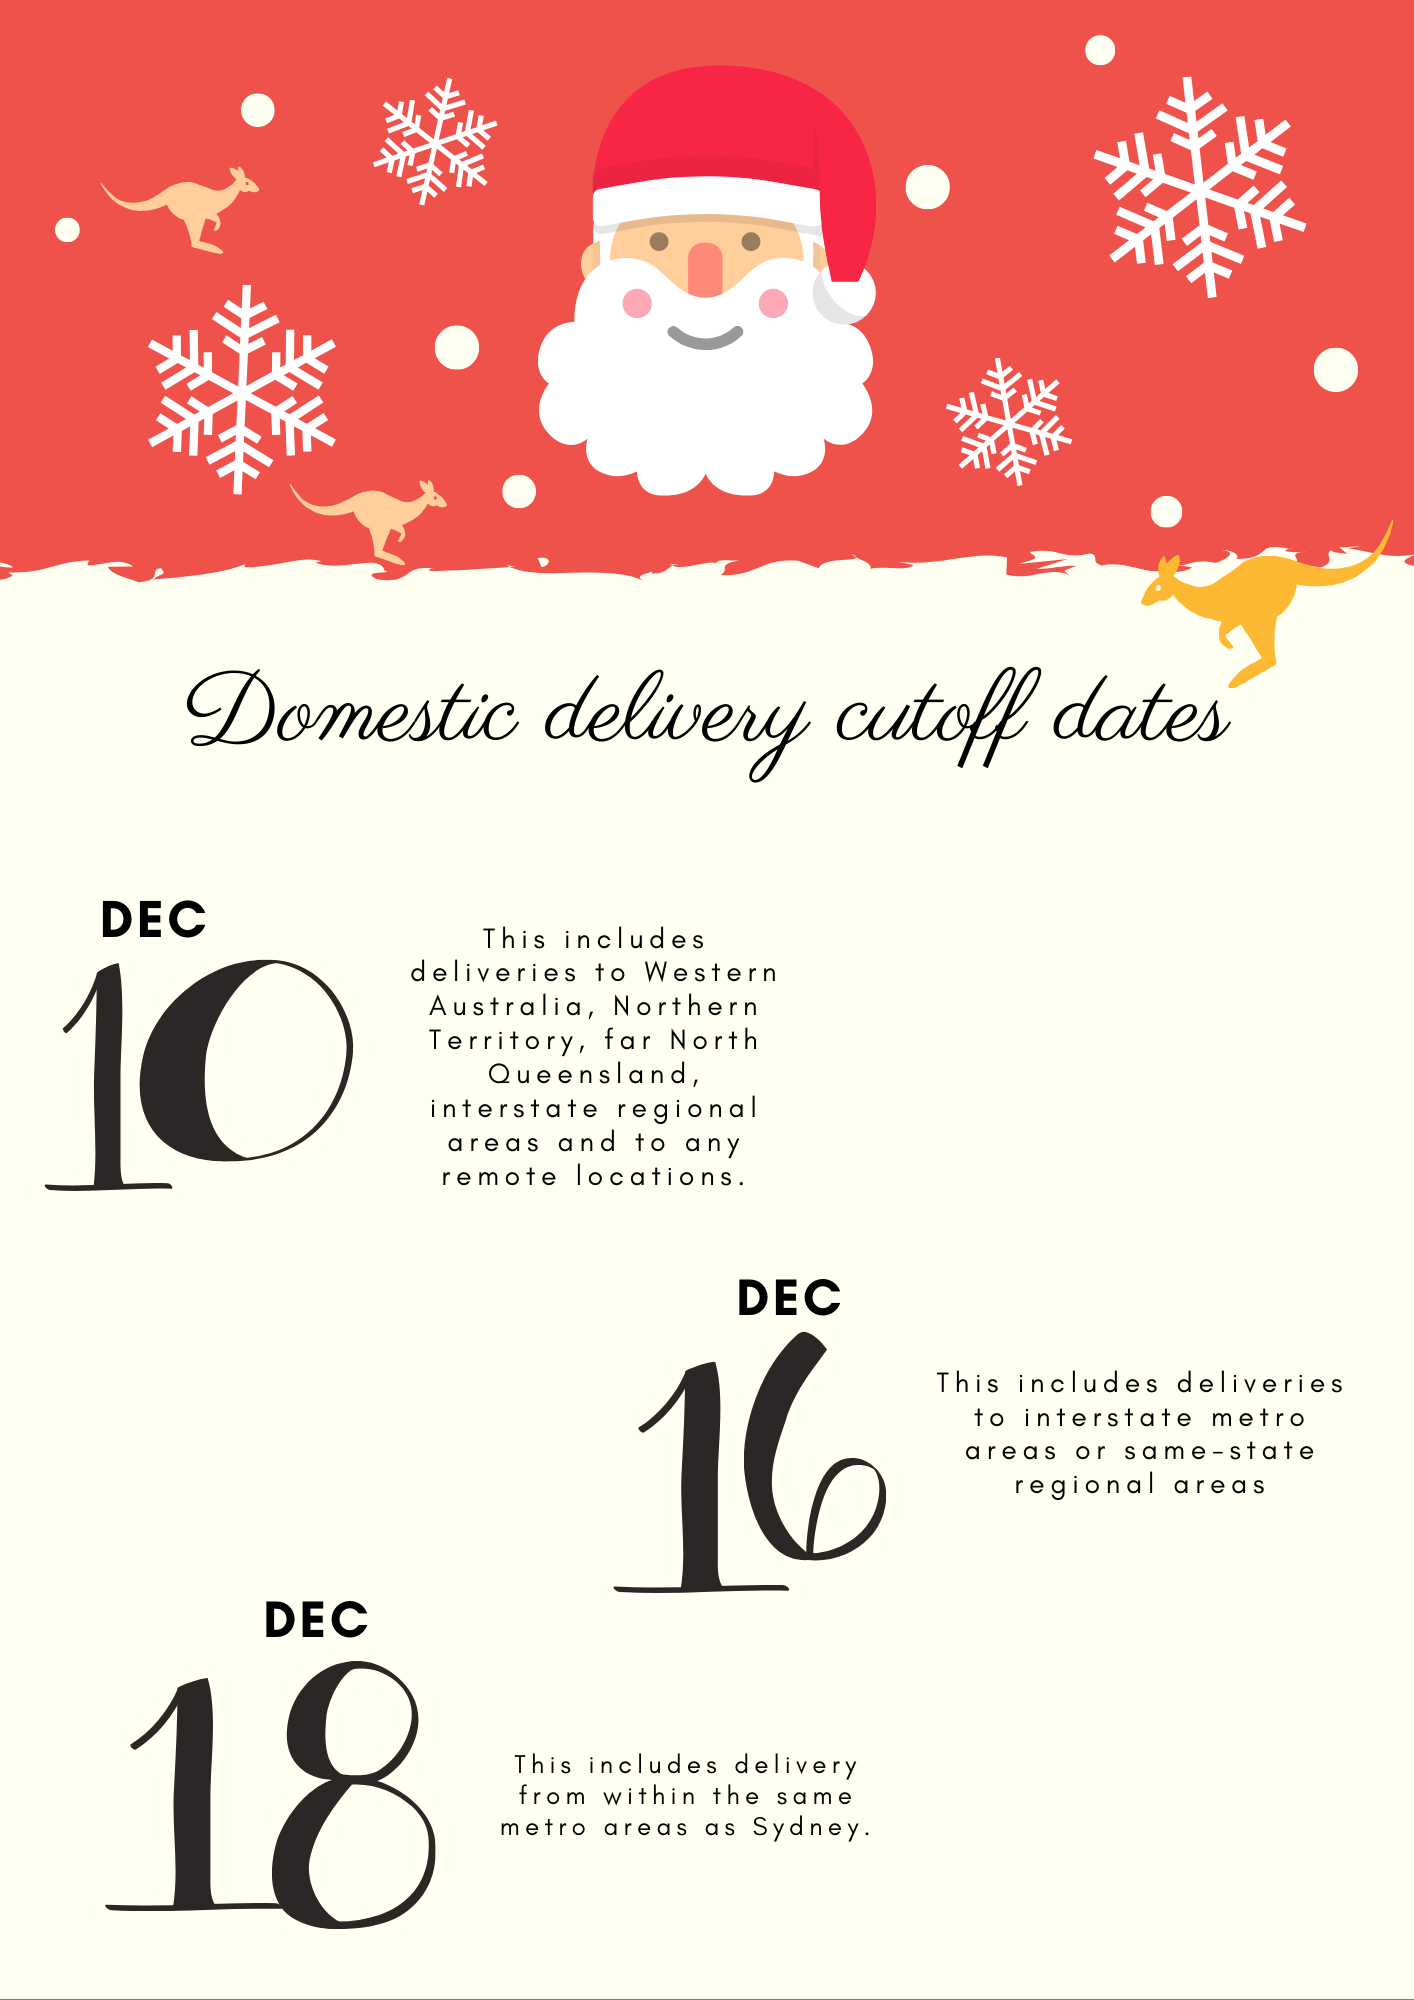 TECMASK Domestic Christmas Delivery Cut Off Dates